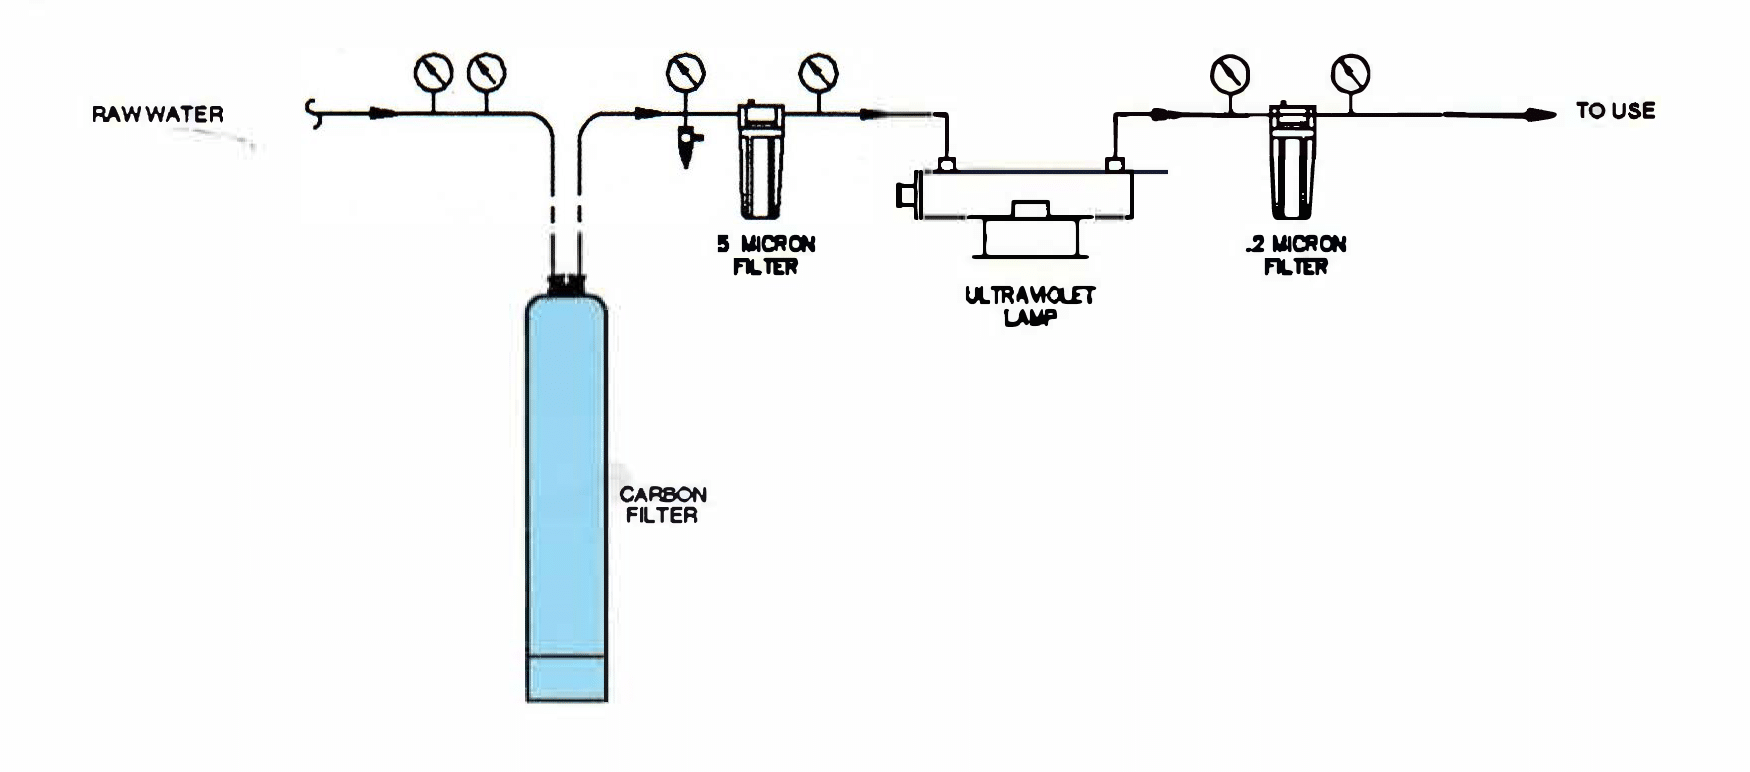 what can carbon remove, carbon removes from water, water cleaned using carbon